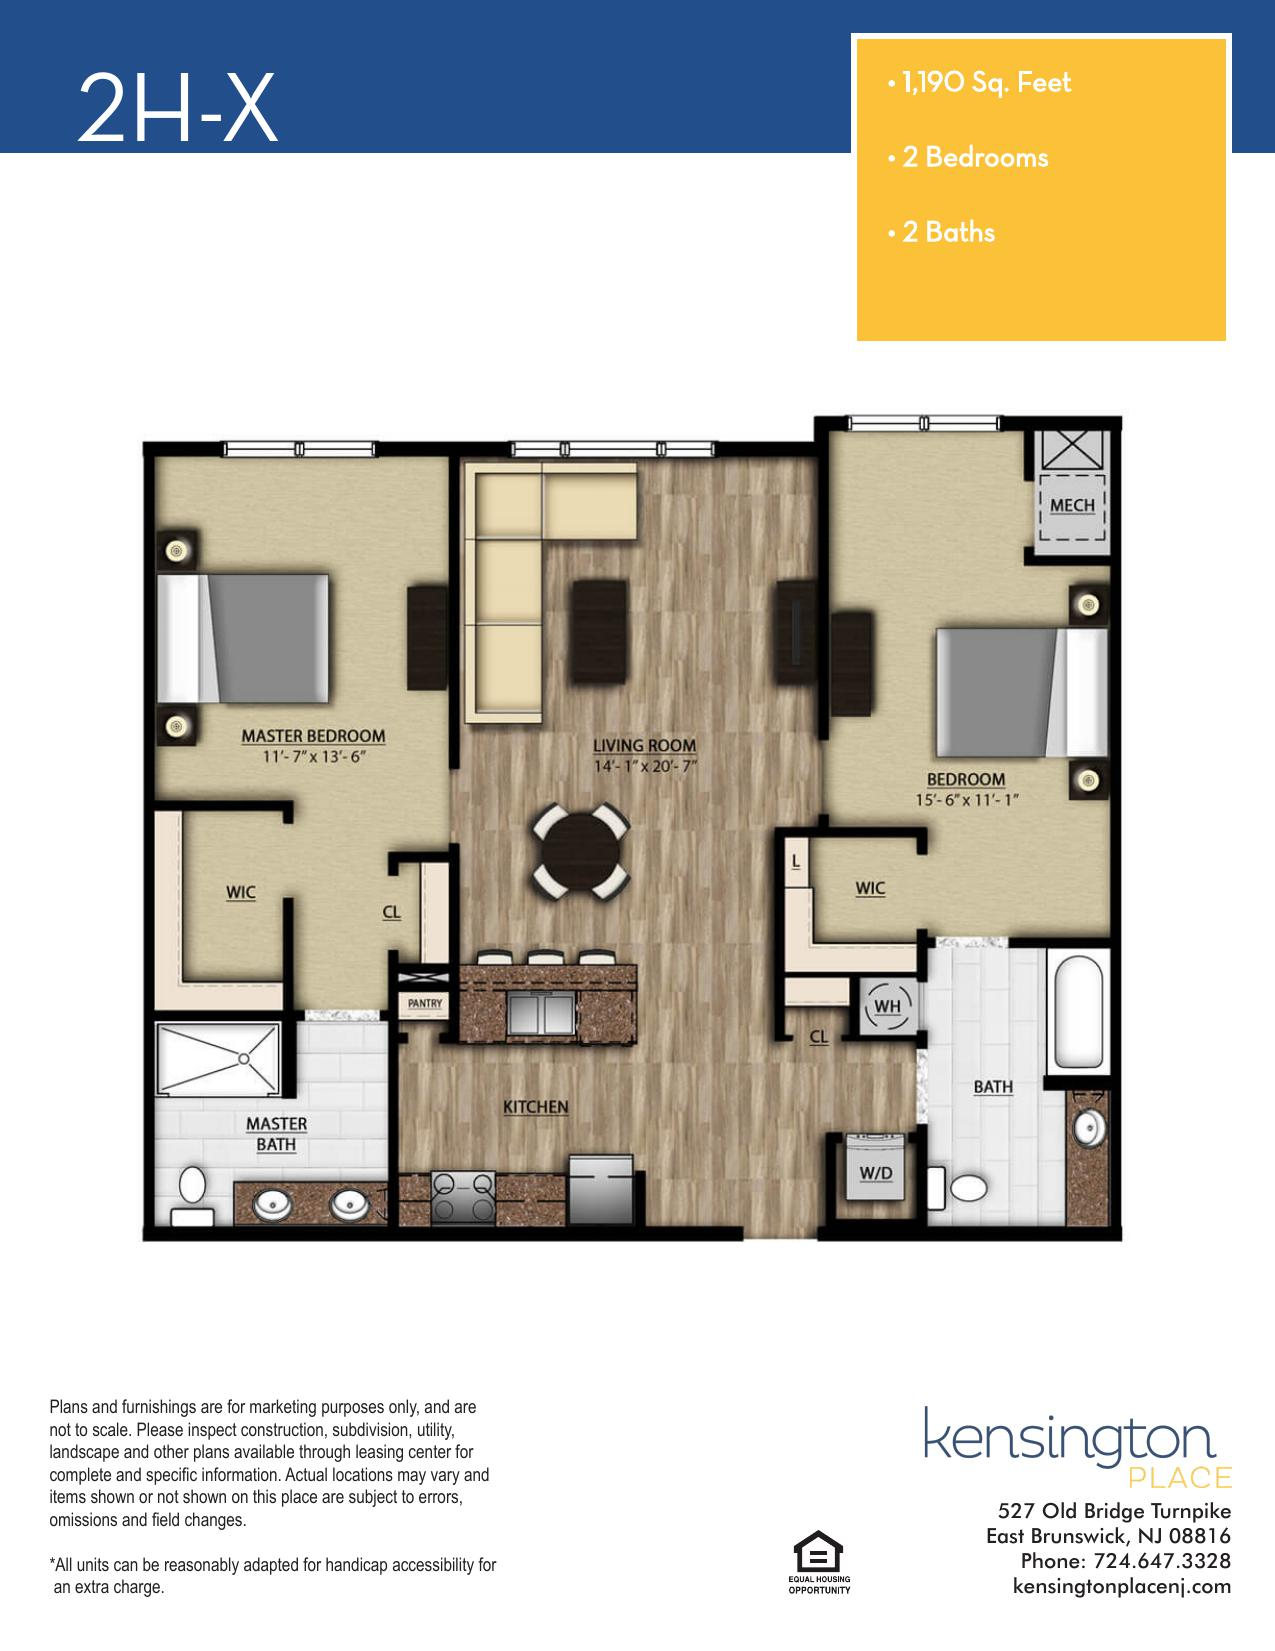 Kensington Place Apartment Floor Plan 2HX